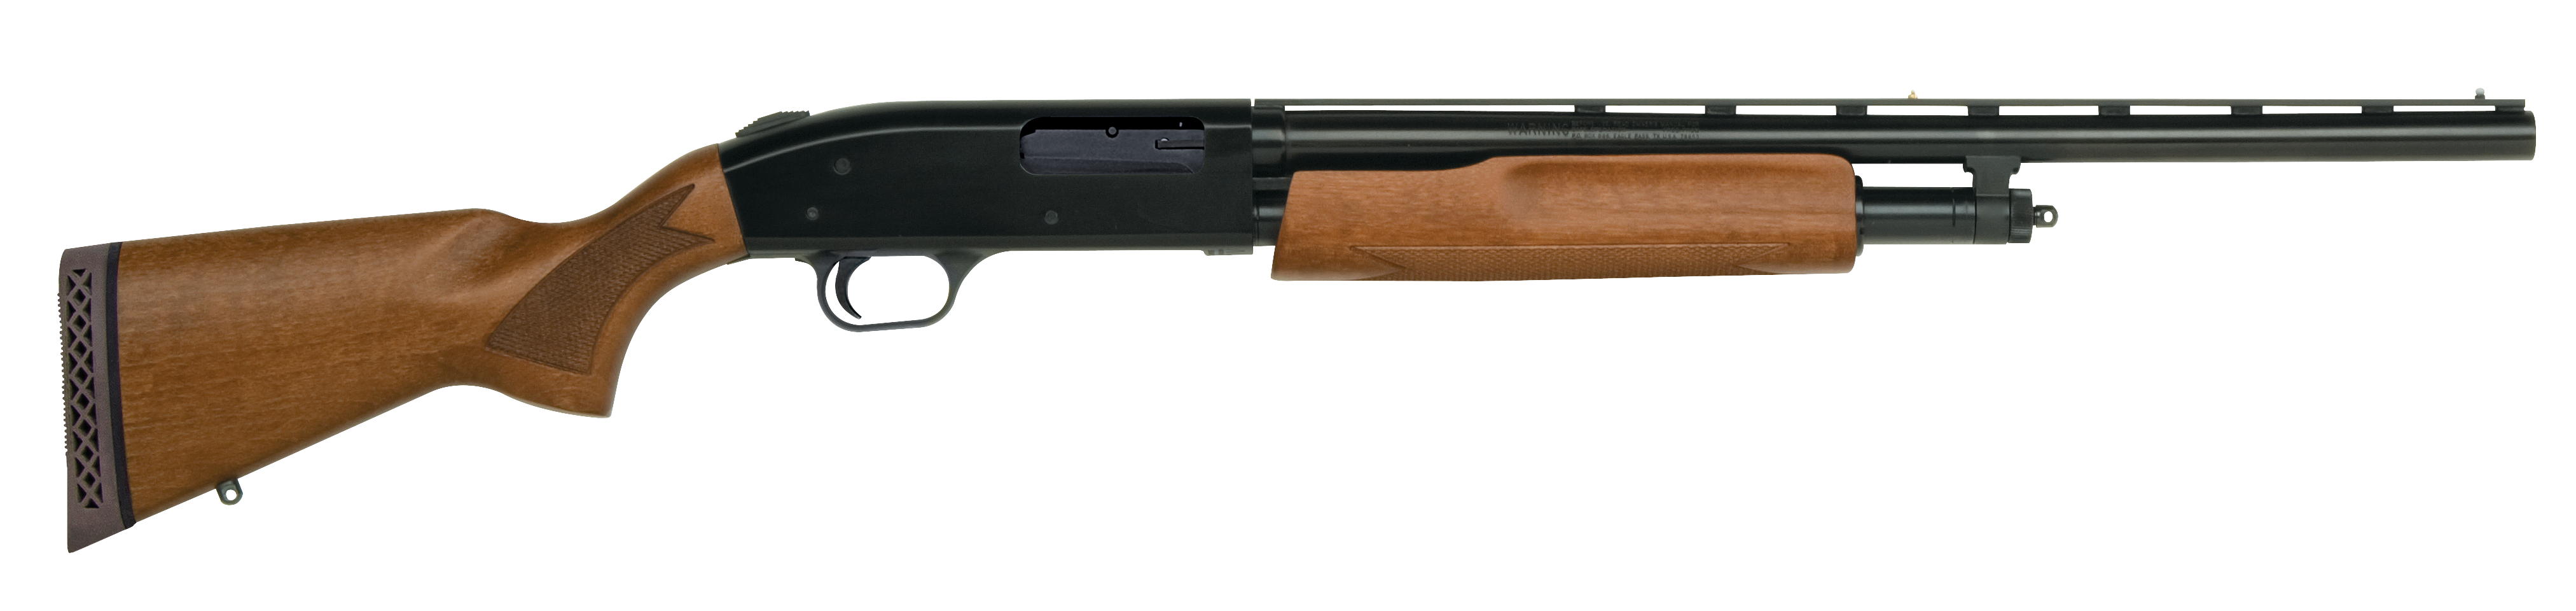 pump action 20 gauge - HD 4050×960